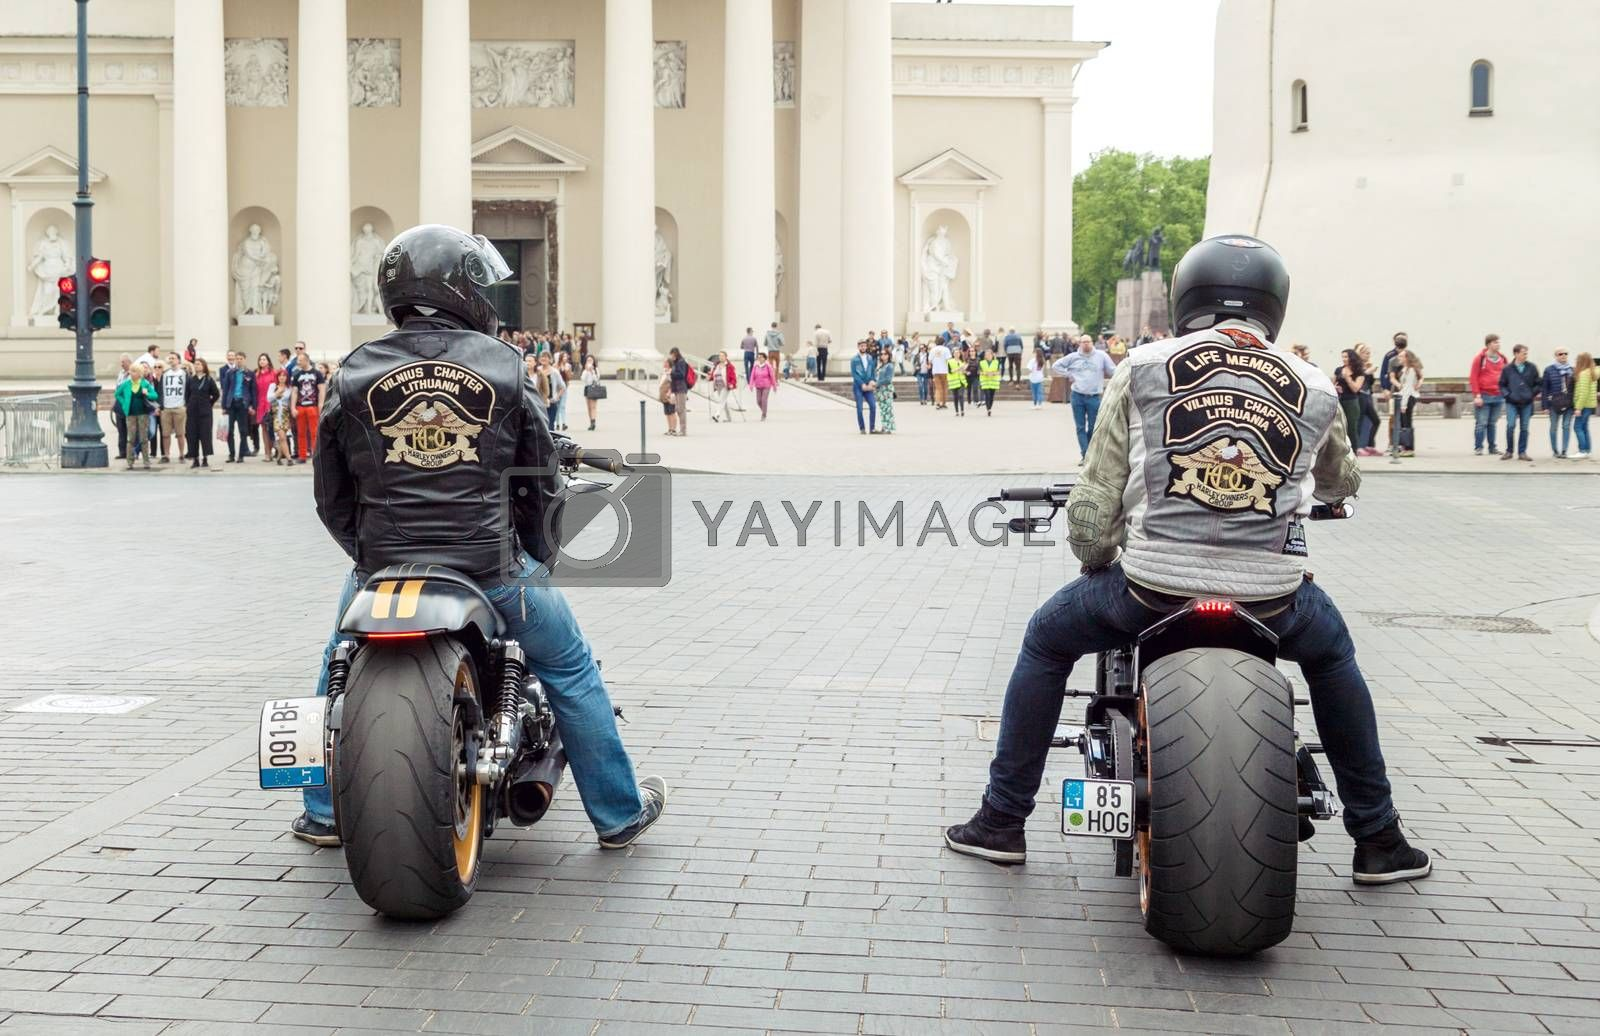 VILNIUS, LITHUANIA - MAY 21, 2016: Two riders sitting on Harley-Davidson bikes and waiting for green light on the street in Vilnius, Lithuania.